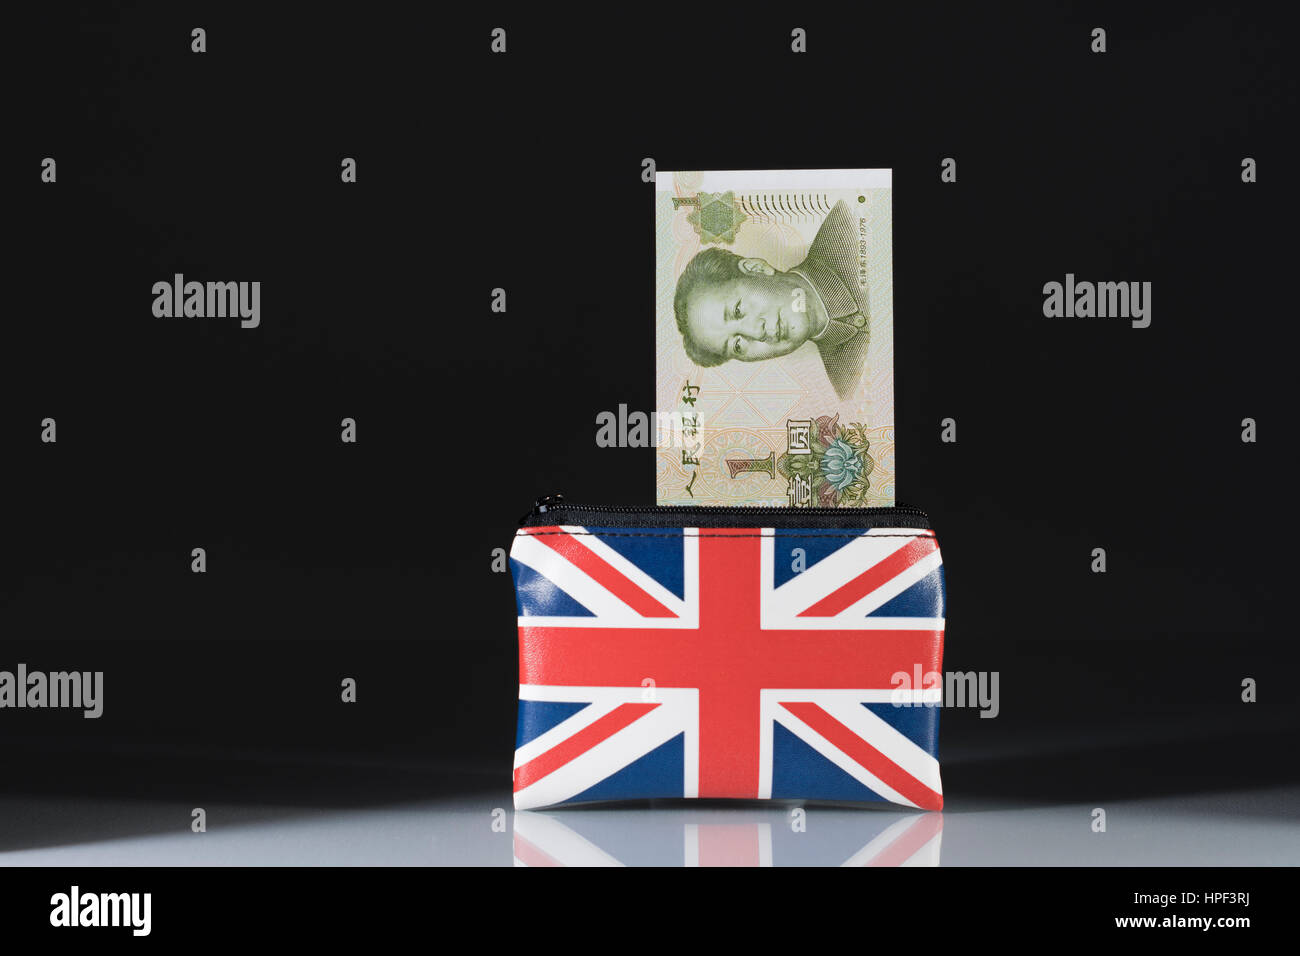 Union Jack coin purse with Chinese Yuan / Renminbi ... against a dark background. Metaphor for Yuan-Pound exchange - Stock Image